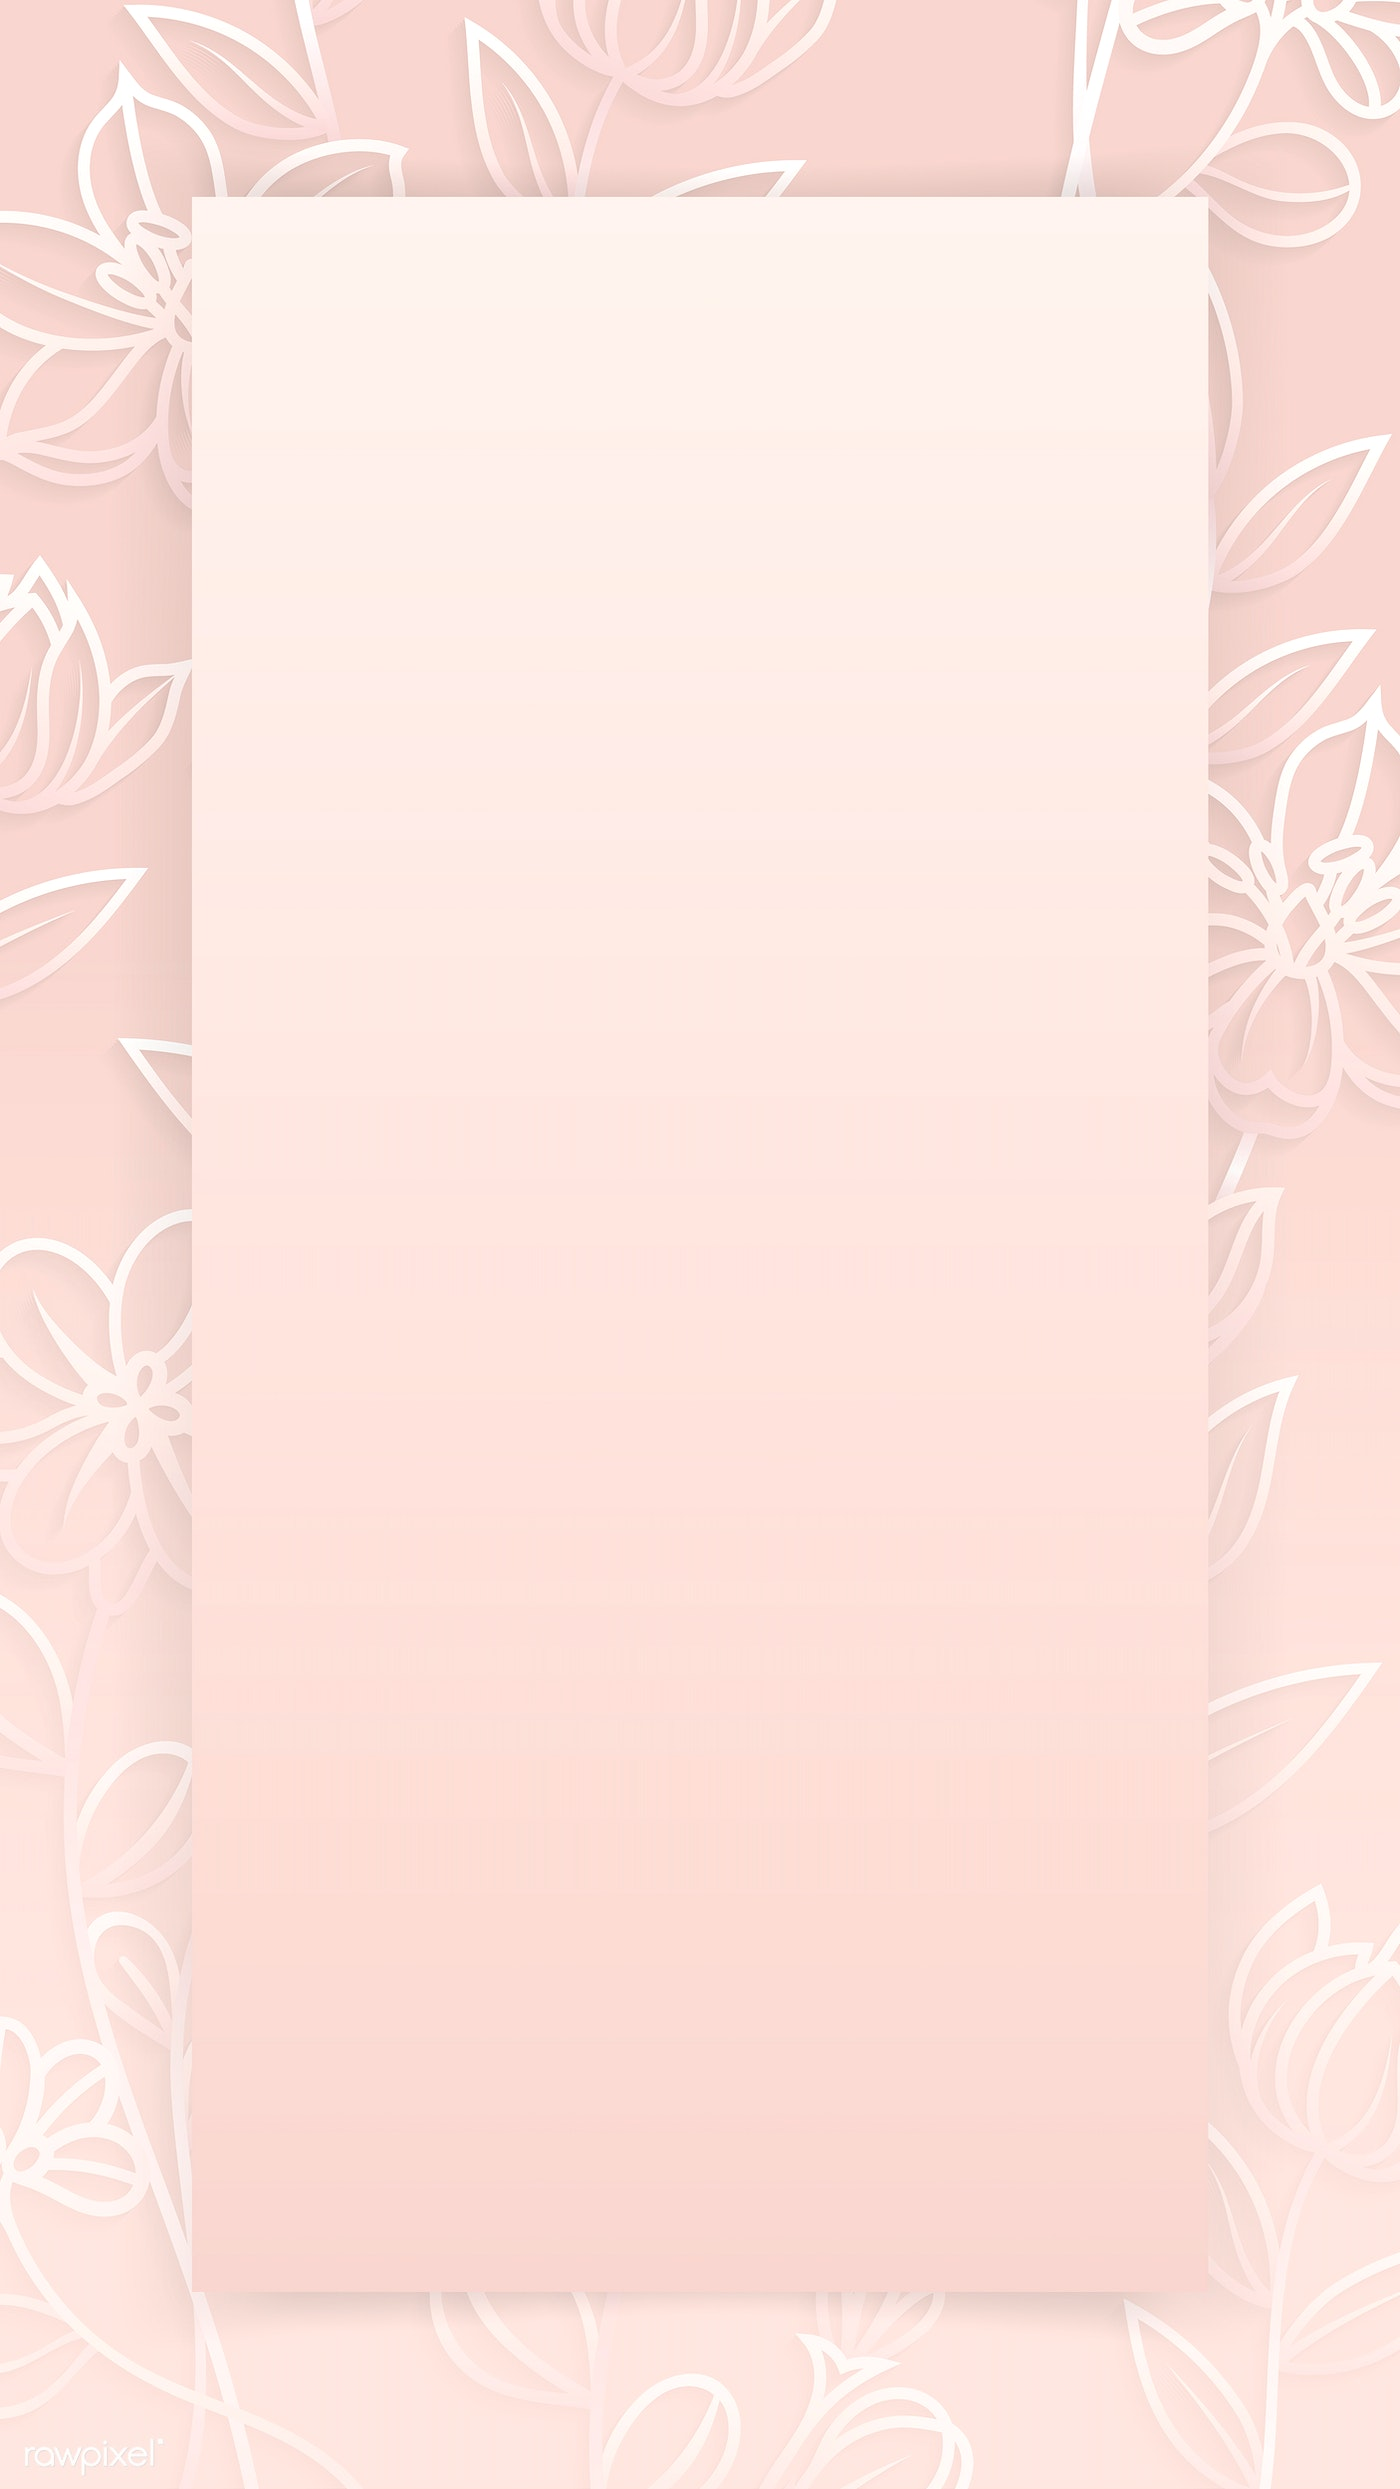 Floral Patterned Phone Background Royalty Free Vector 1218082